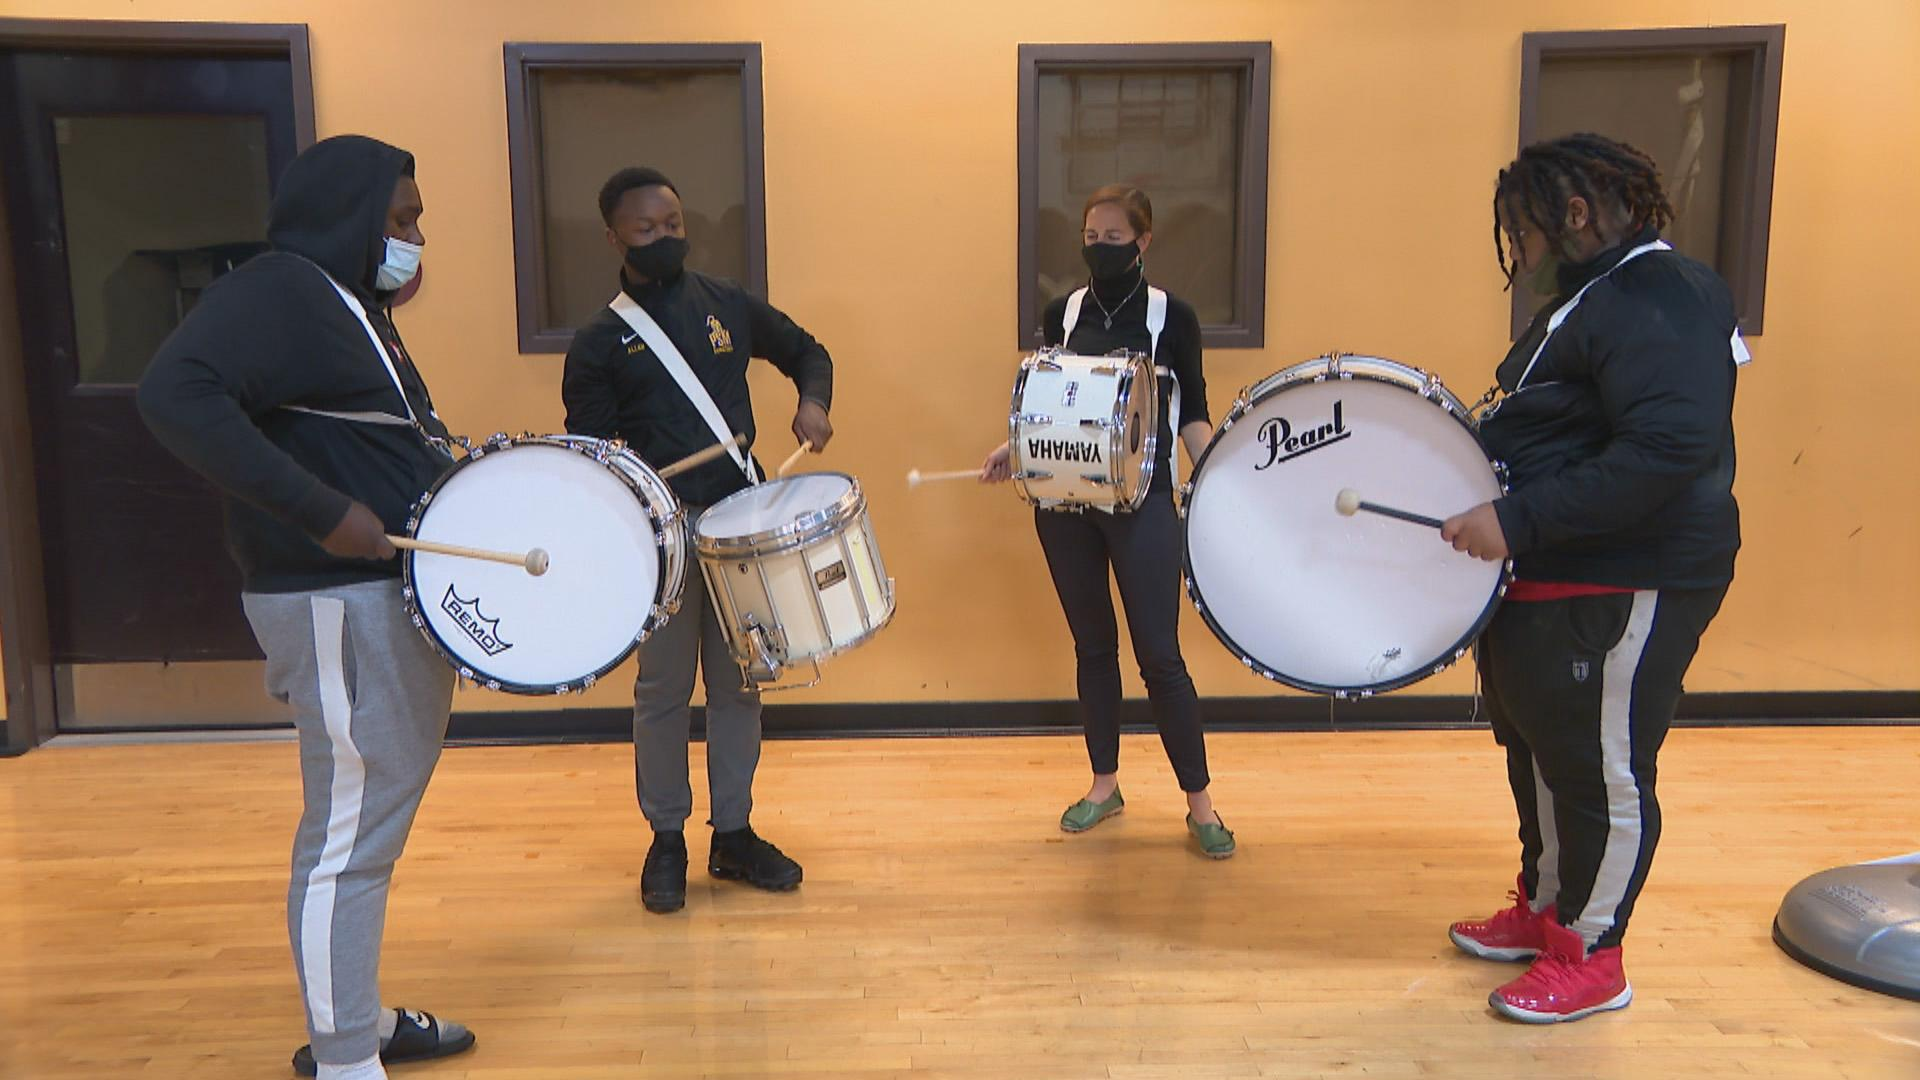 The drum line of BandWith rehearses inside the gymnasium of Marillac St. Vincent Family Services in East Garfield Park on Oct. 15, 2020. Snare drummer Marquis Allen, second to left, is the student instructor of the drum ensemble. (WTTW News)